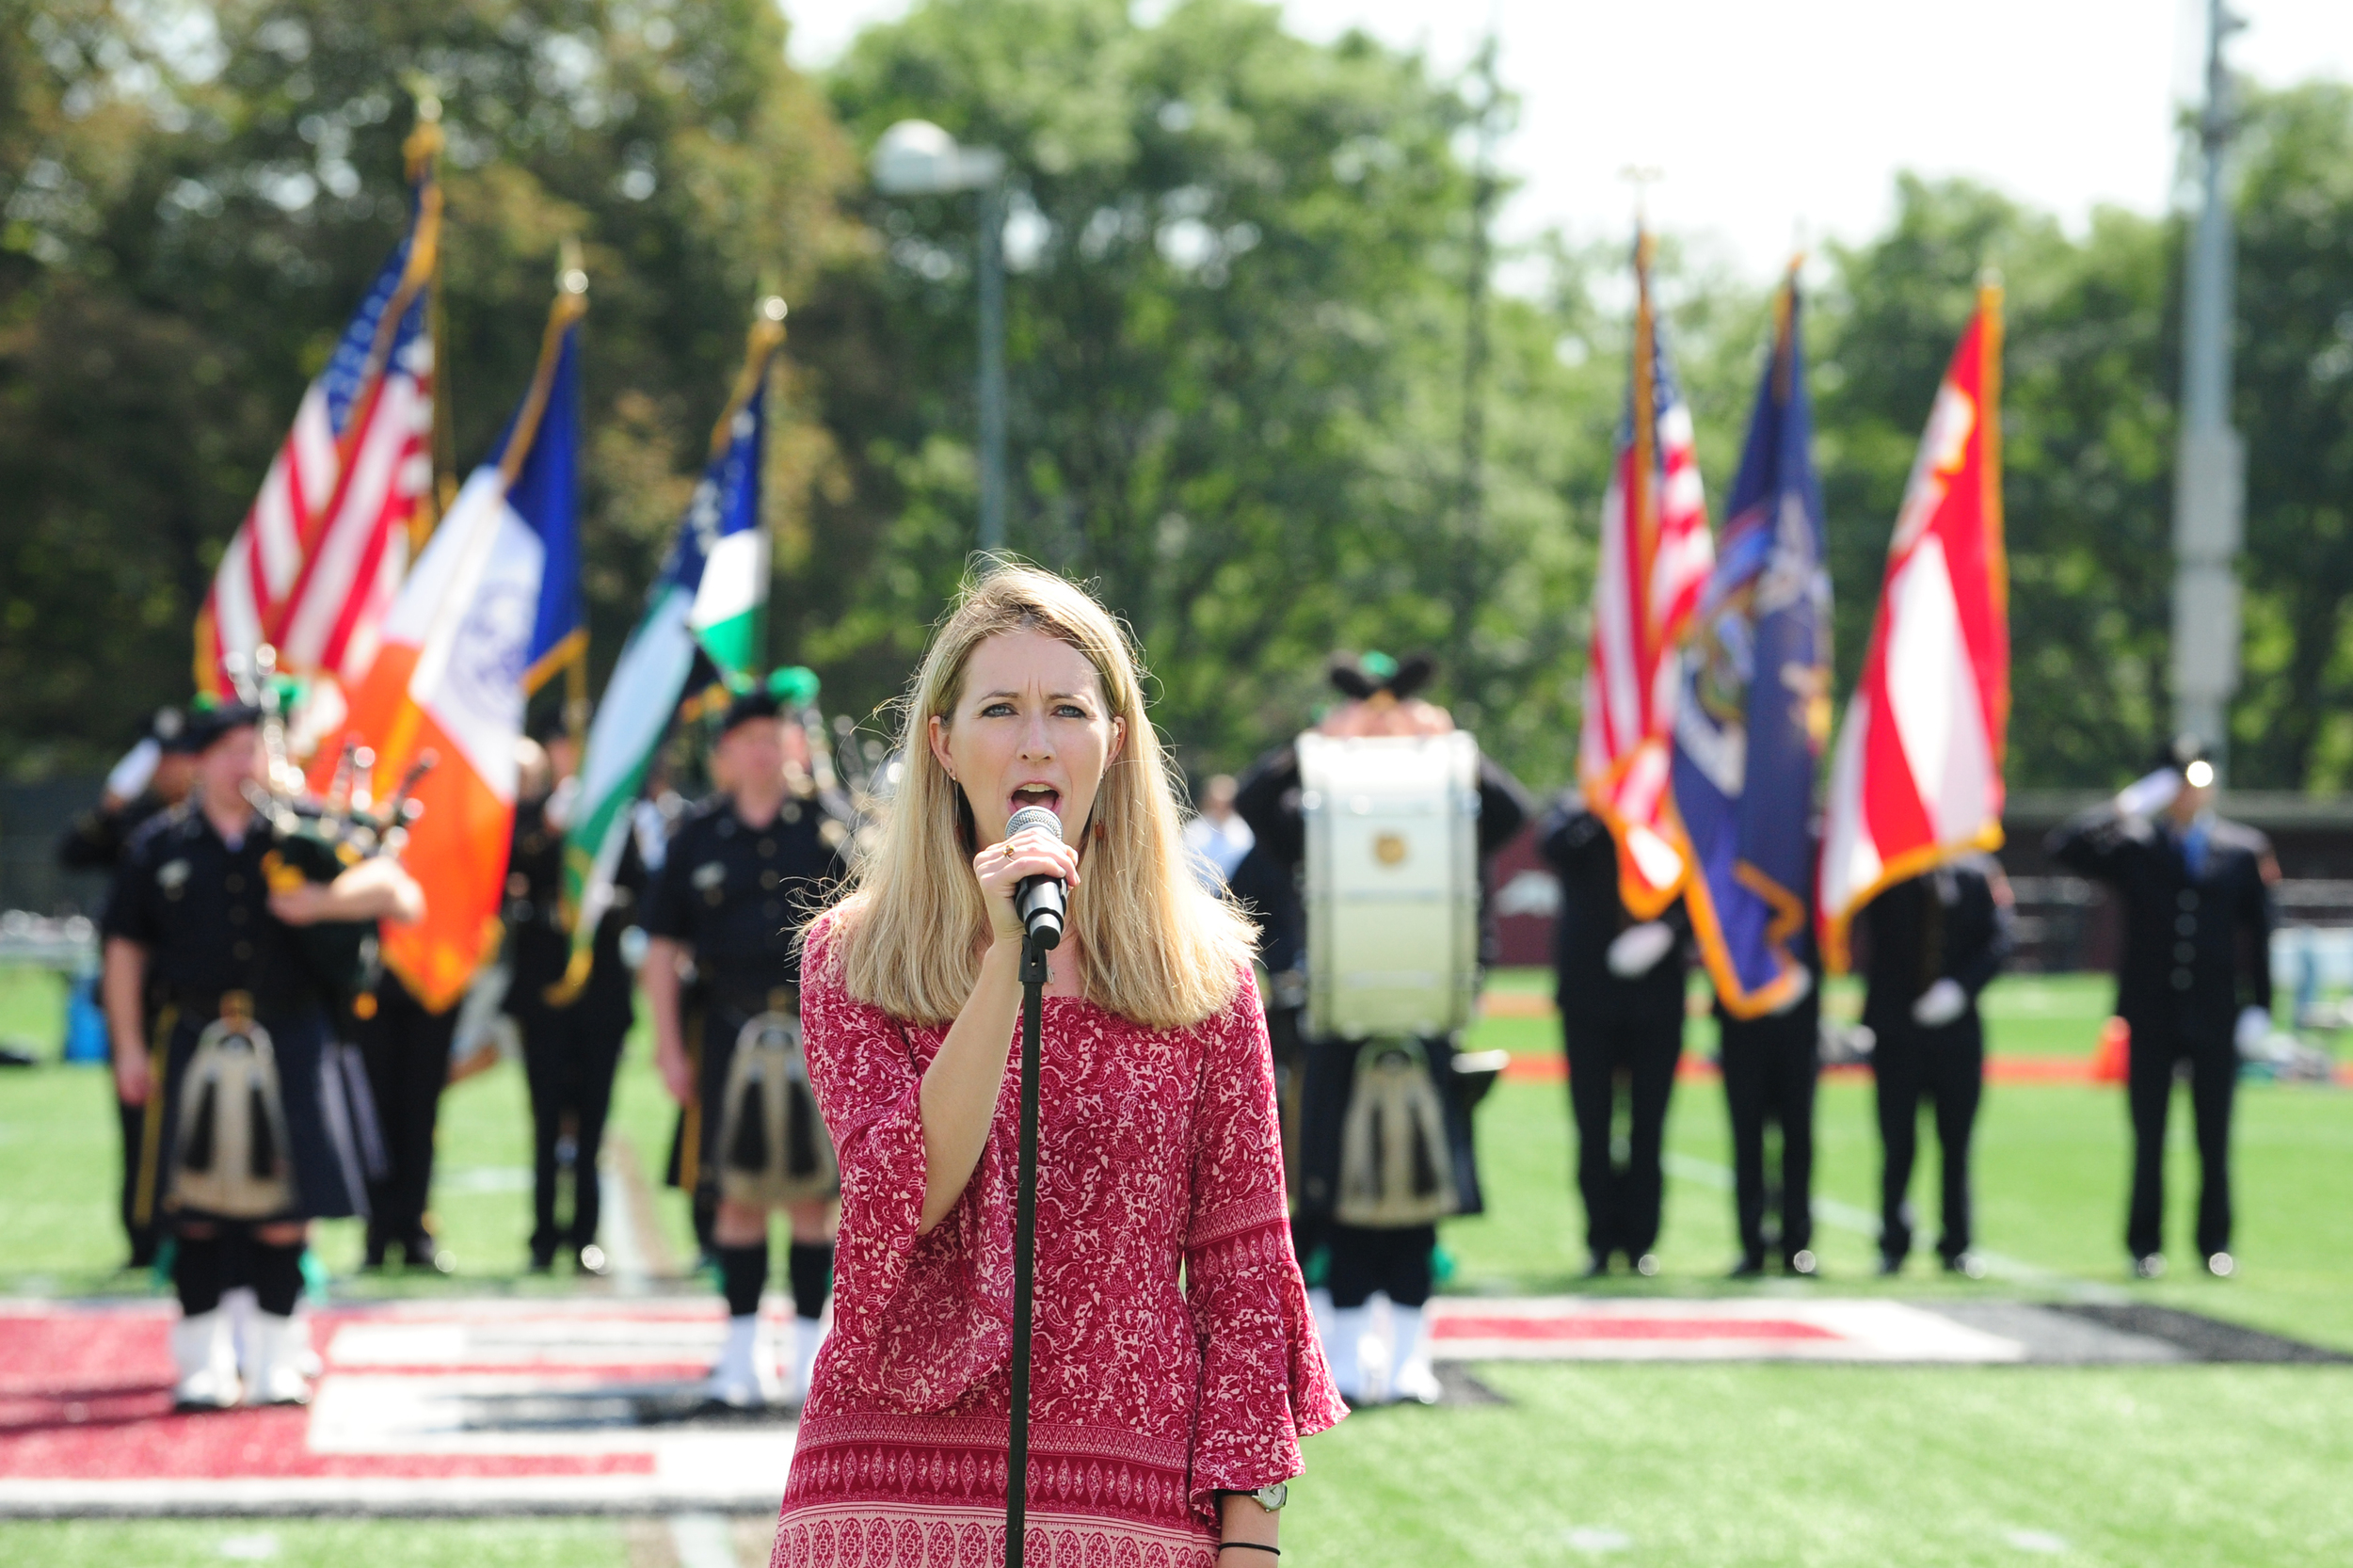 Deanna Howes Singing the National Anthem at Fordham University on September 19, 2015 (Photo by Janet Faller Sassi, Fordham University)